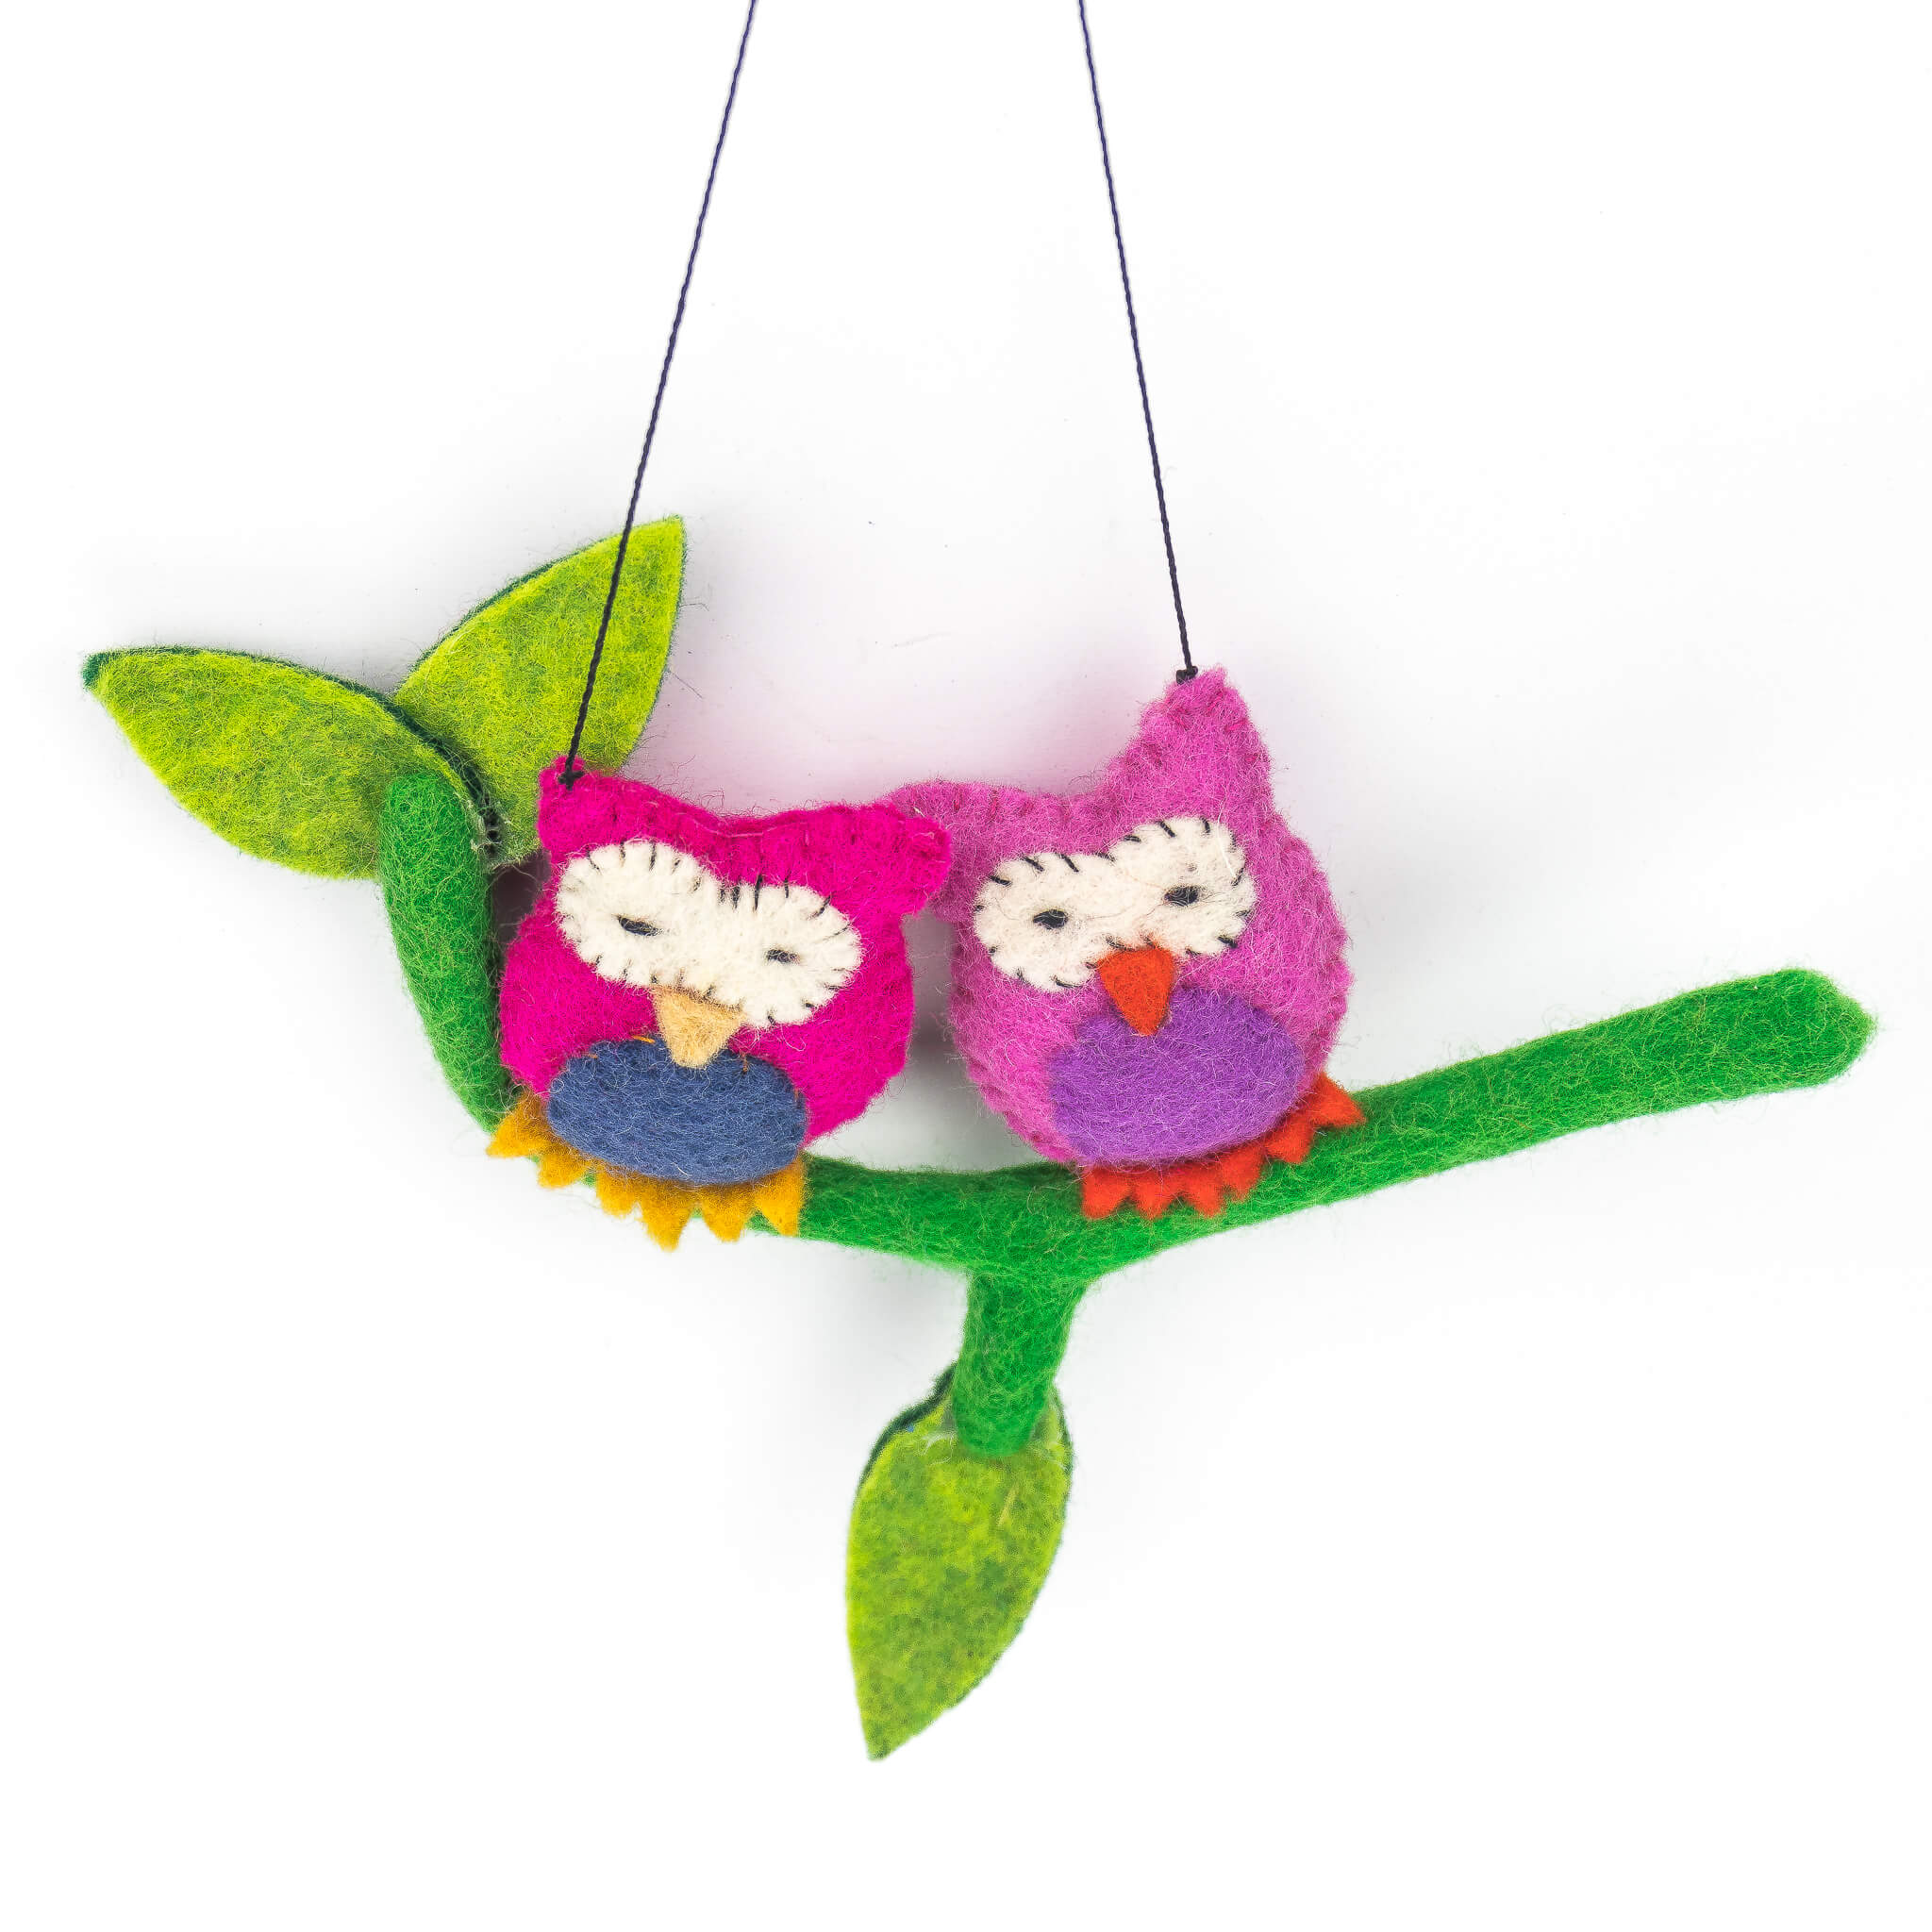 kid's toy - colorful toy - organic toy - kids hanger - pair bird hanger - thamelshop- pair bird hanger - bird hanger - christmas hanger - christmas bird hanger - christmas decorative item - wool decorative item - felt decorative item - handmade christmas decorative item - christmas hanger- handmade christmas hanger - handmade christmas item - handmade decorative item - christmas - christmas felt item - bird decorative item